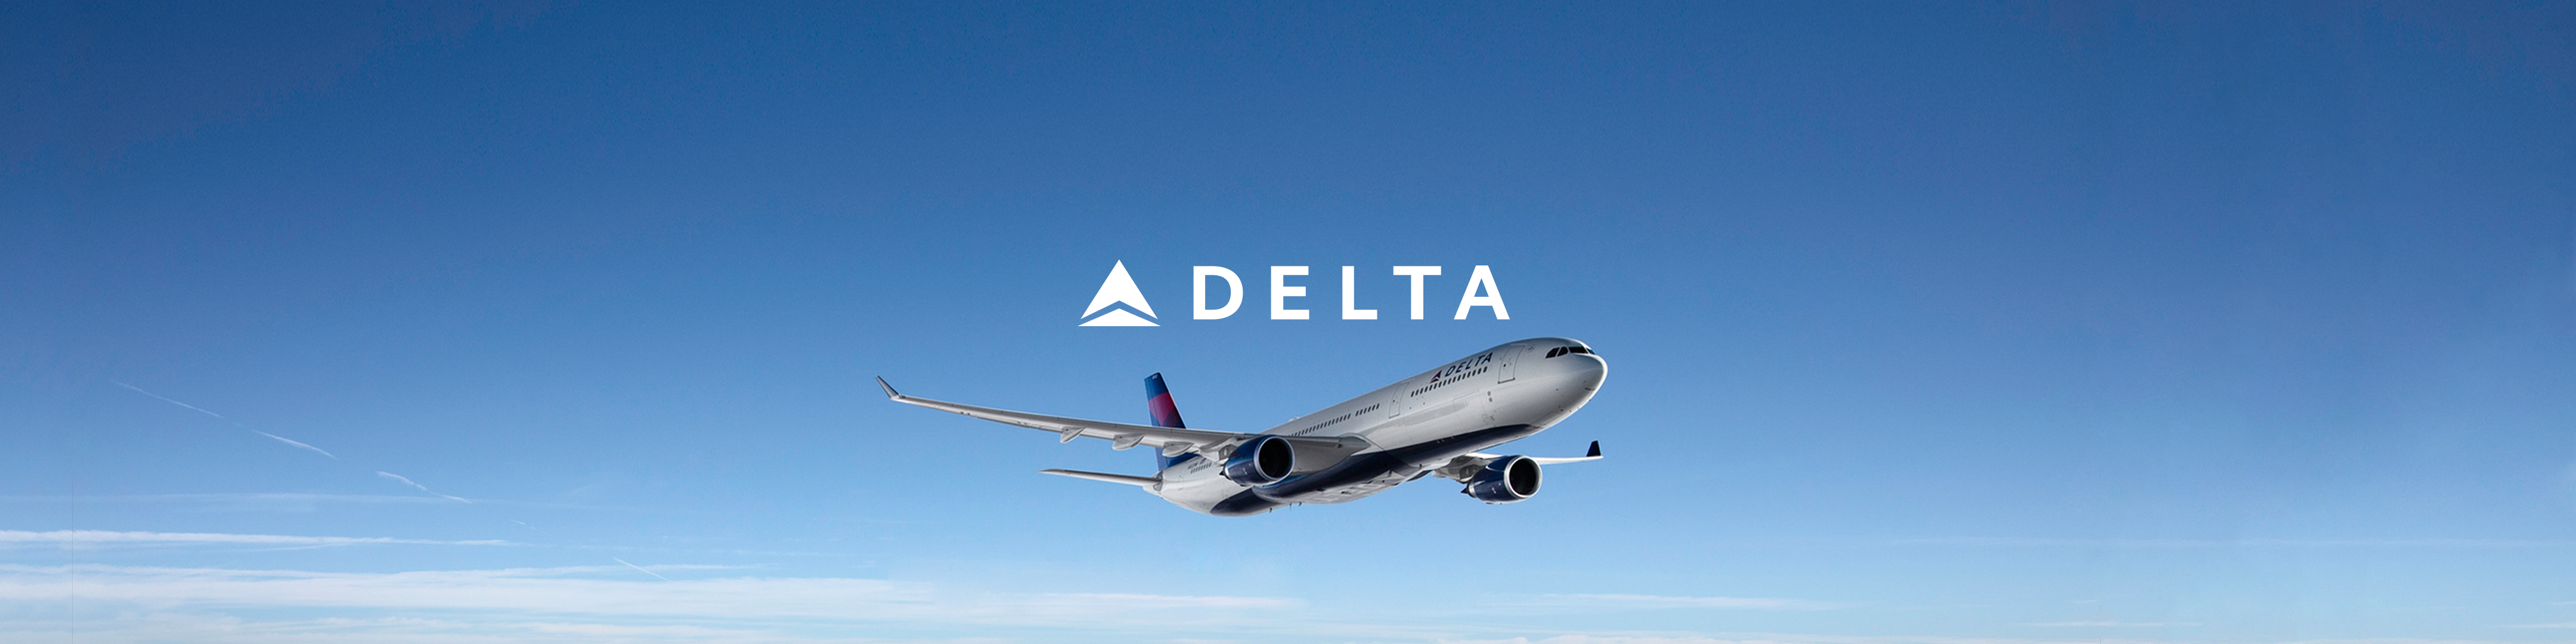 Fly Delta - Revenue & Download estimates - Apple App Store - US